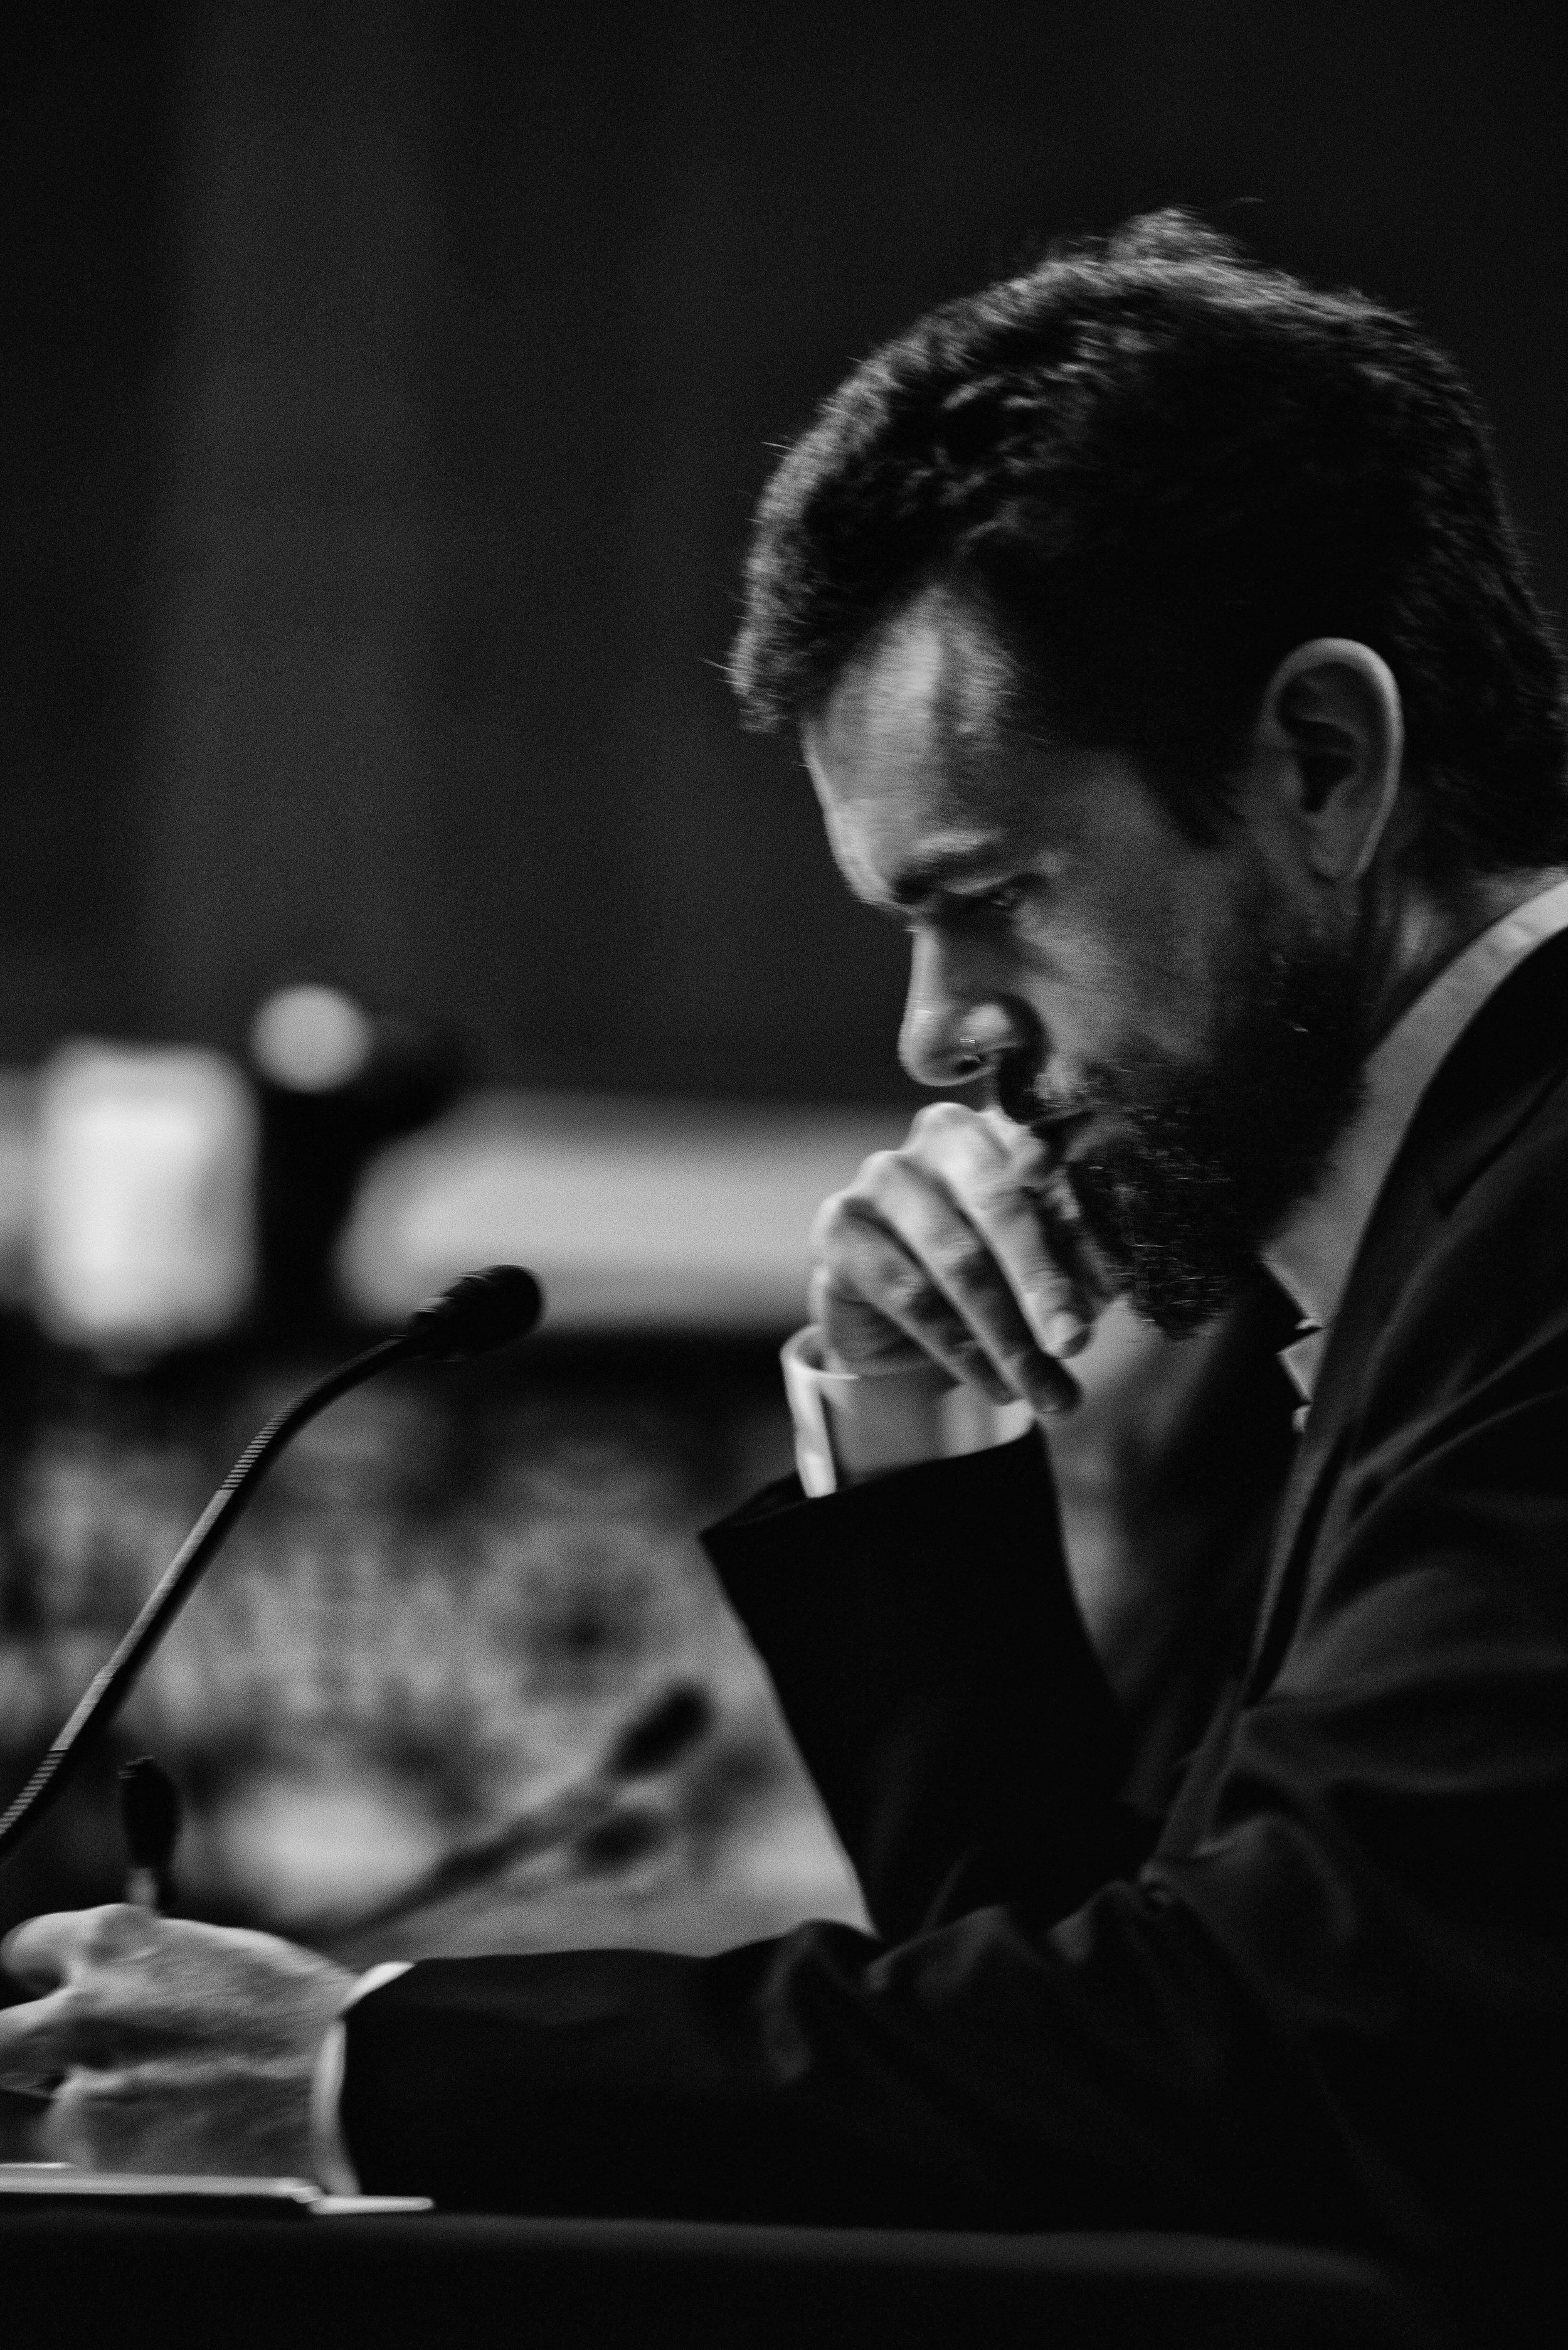 Day 594: Twitter CEO Jack Dorsey testifies during a Senate Intelligence Committee hearing in Washington, DC on September 5, 2018.